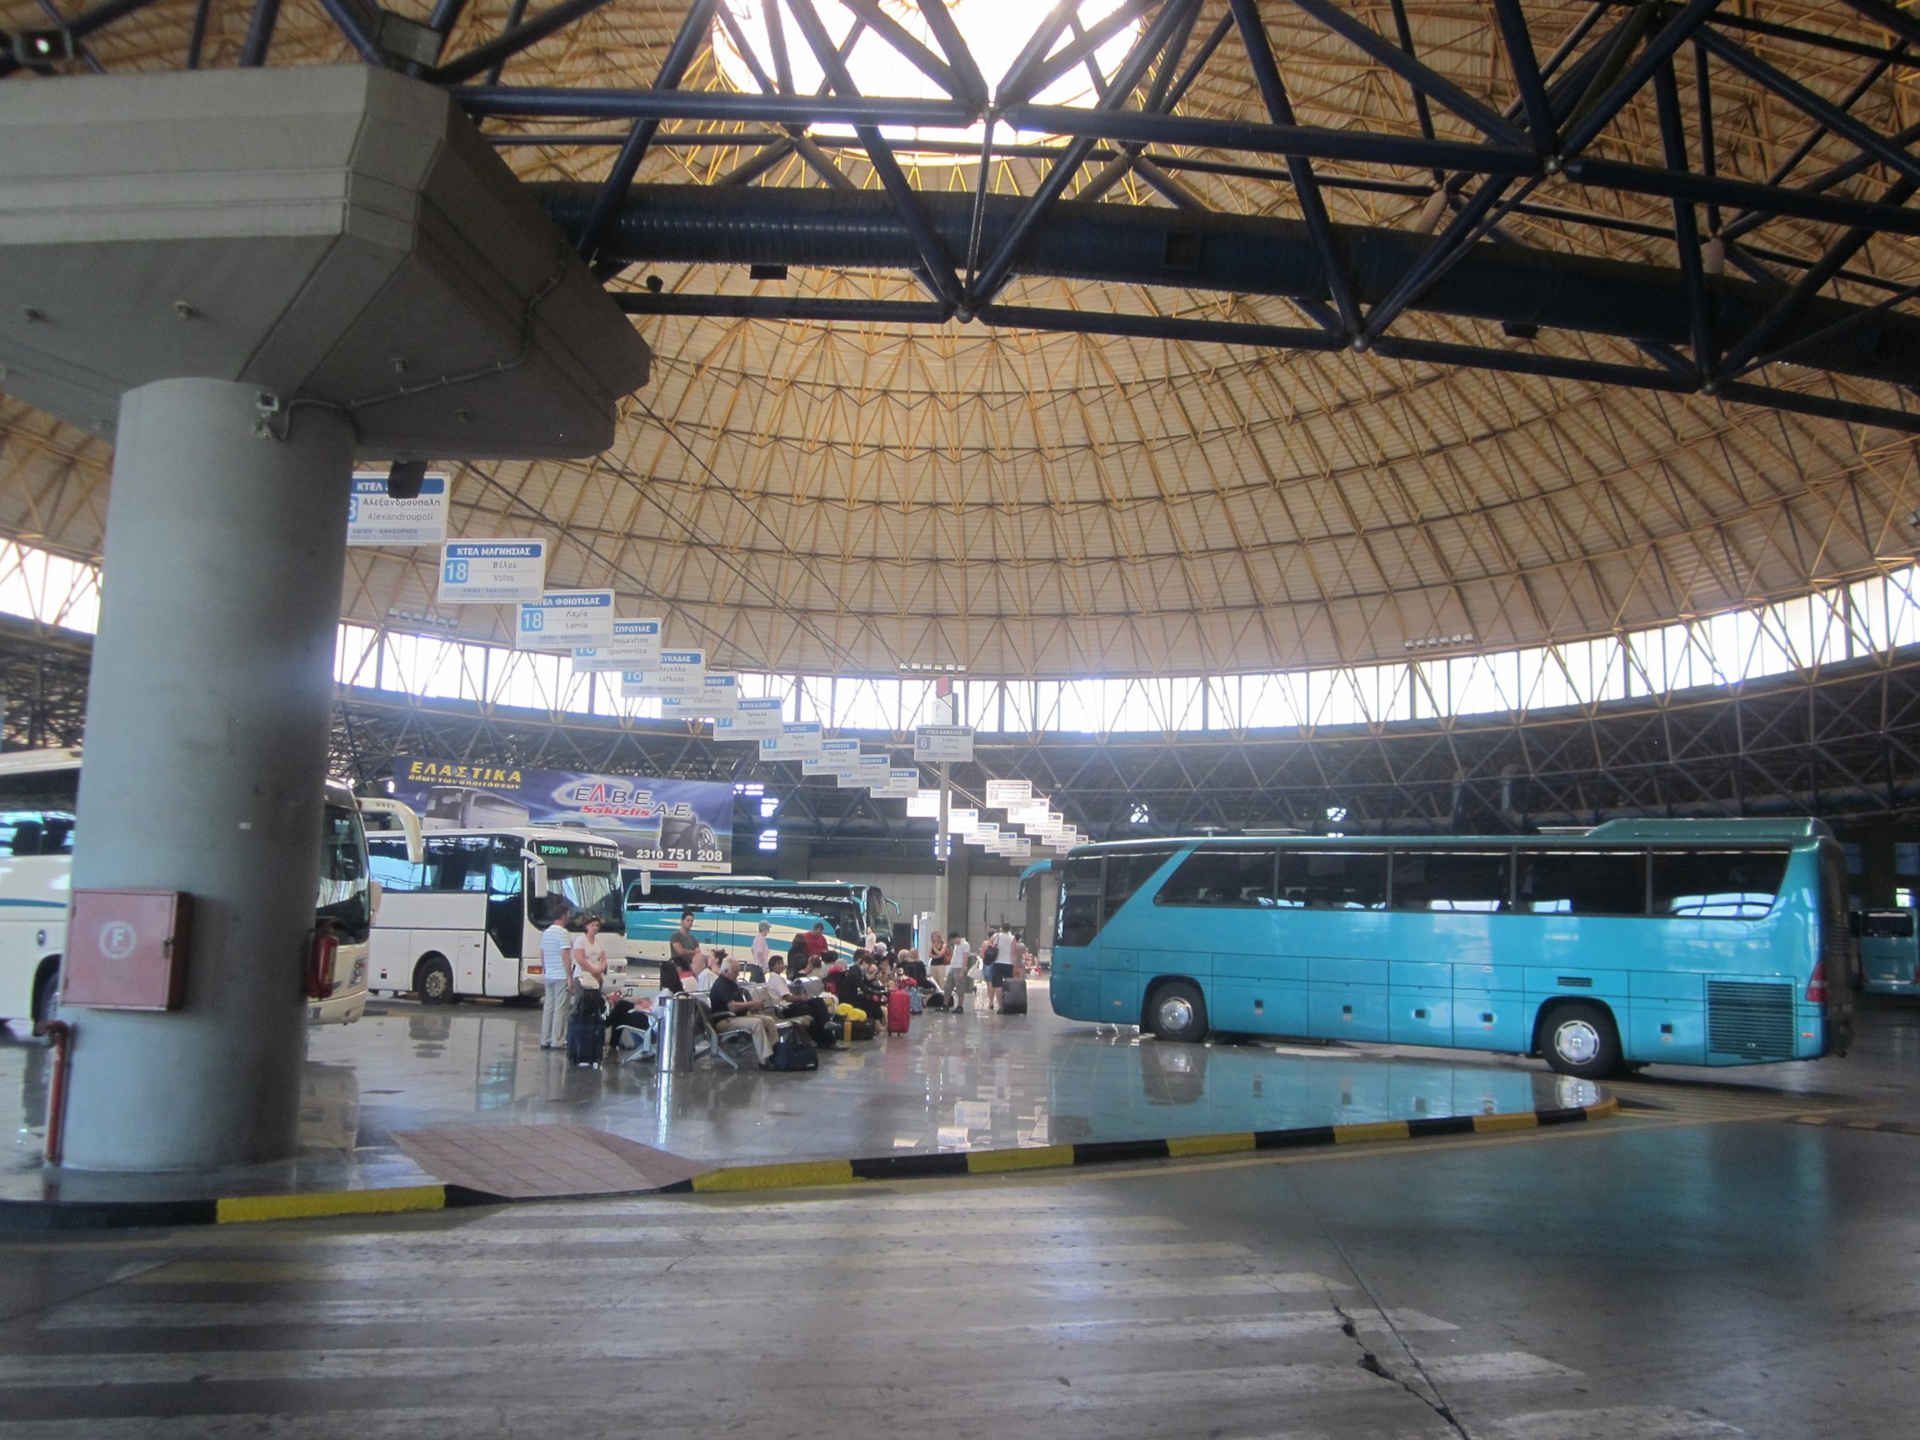 Central busstation of Thessaloniki Greece. From here buses leave to many cities in Greece. There is a very good connection to Berea Greece.